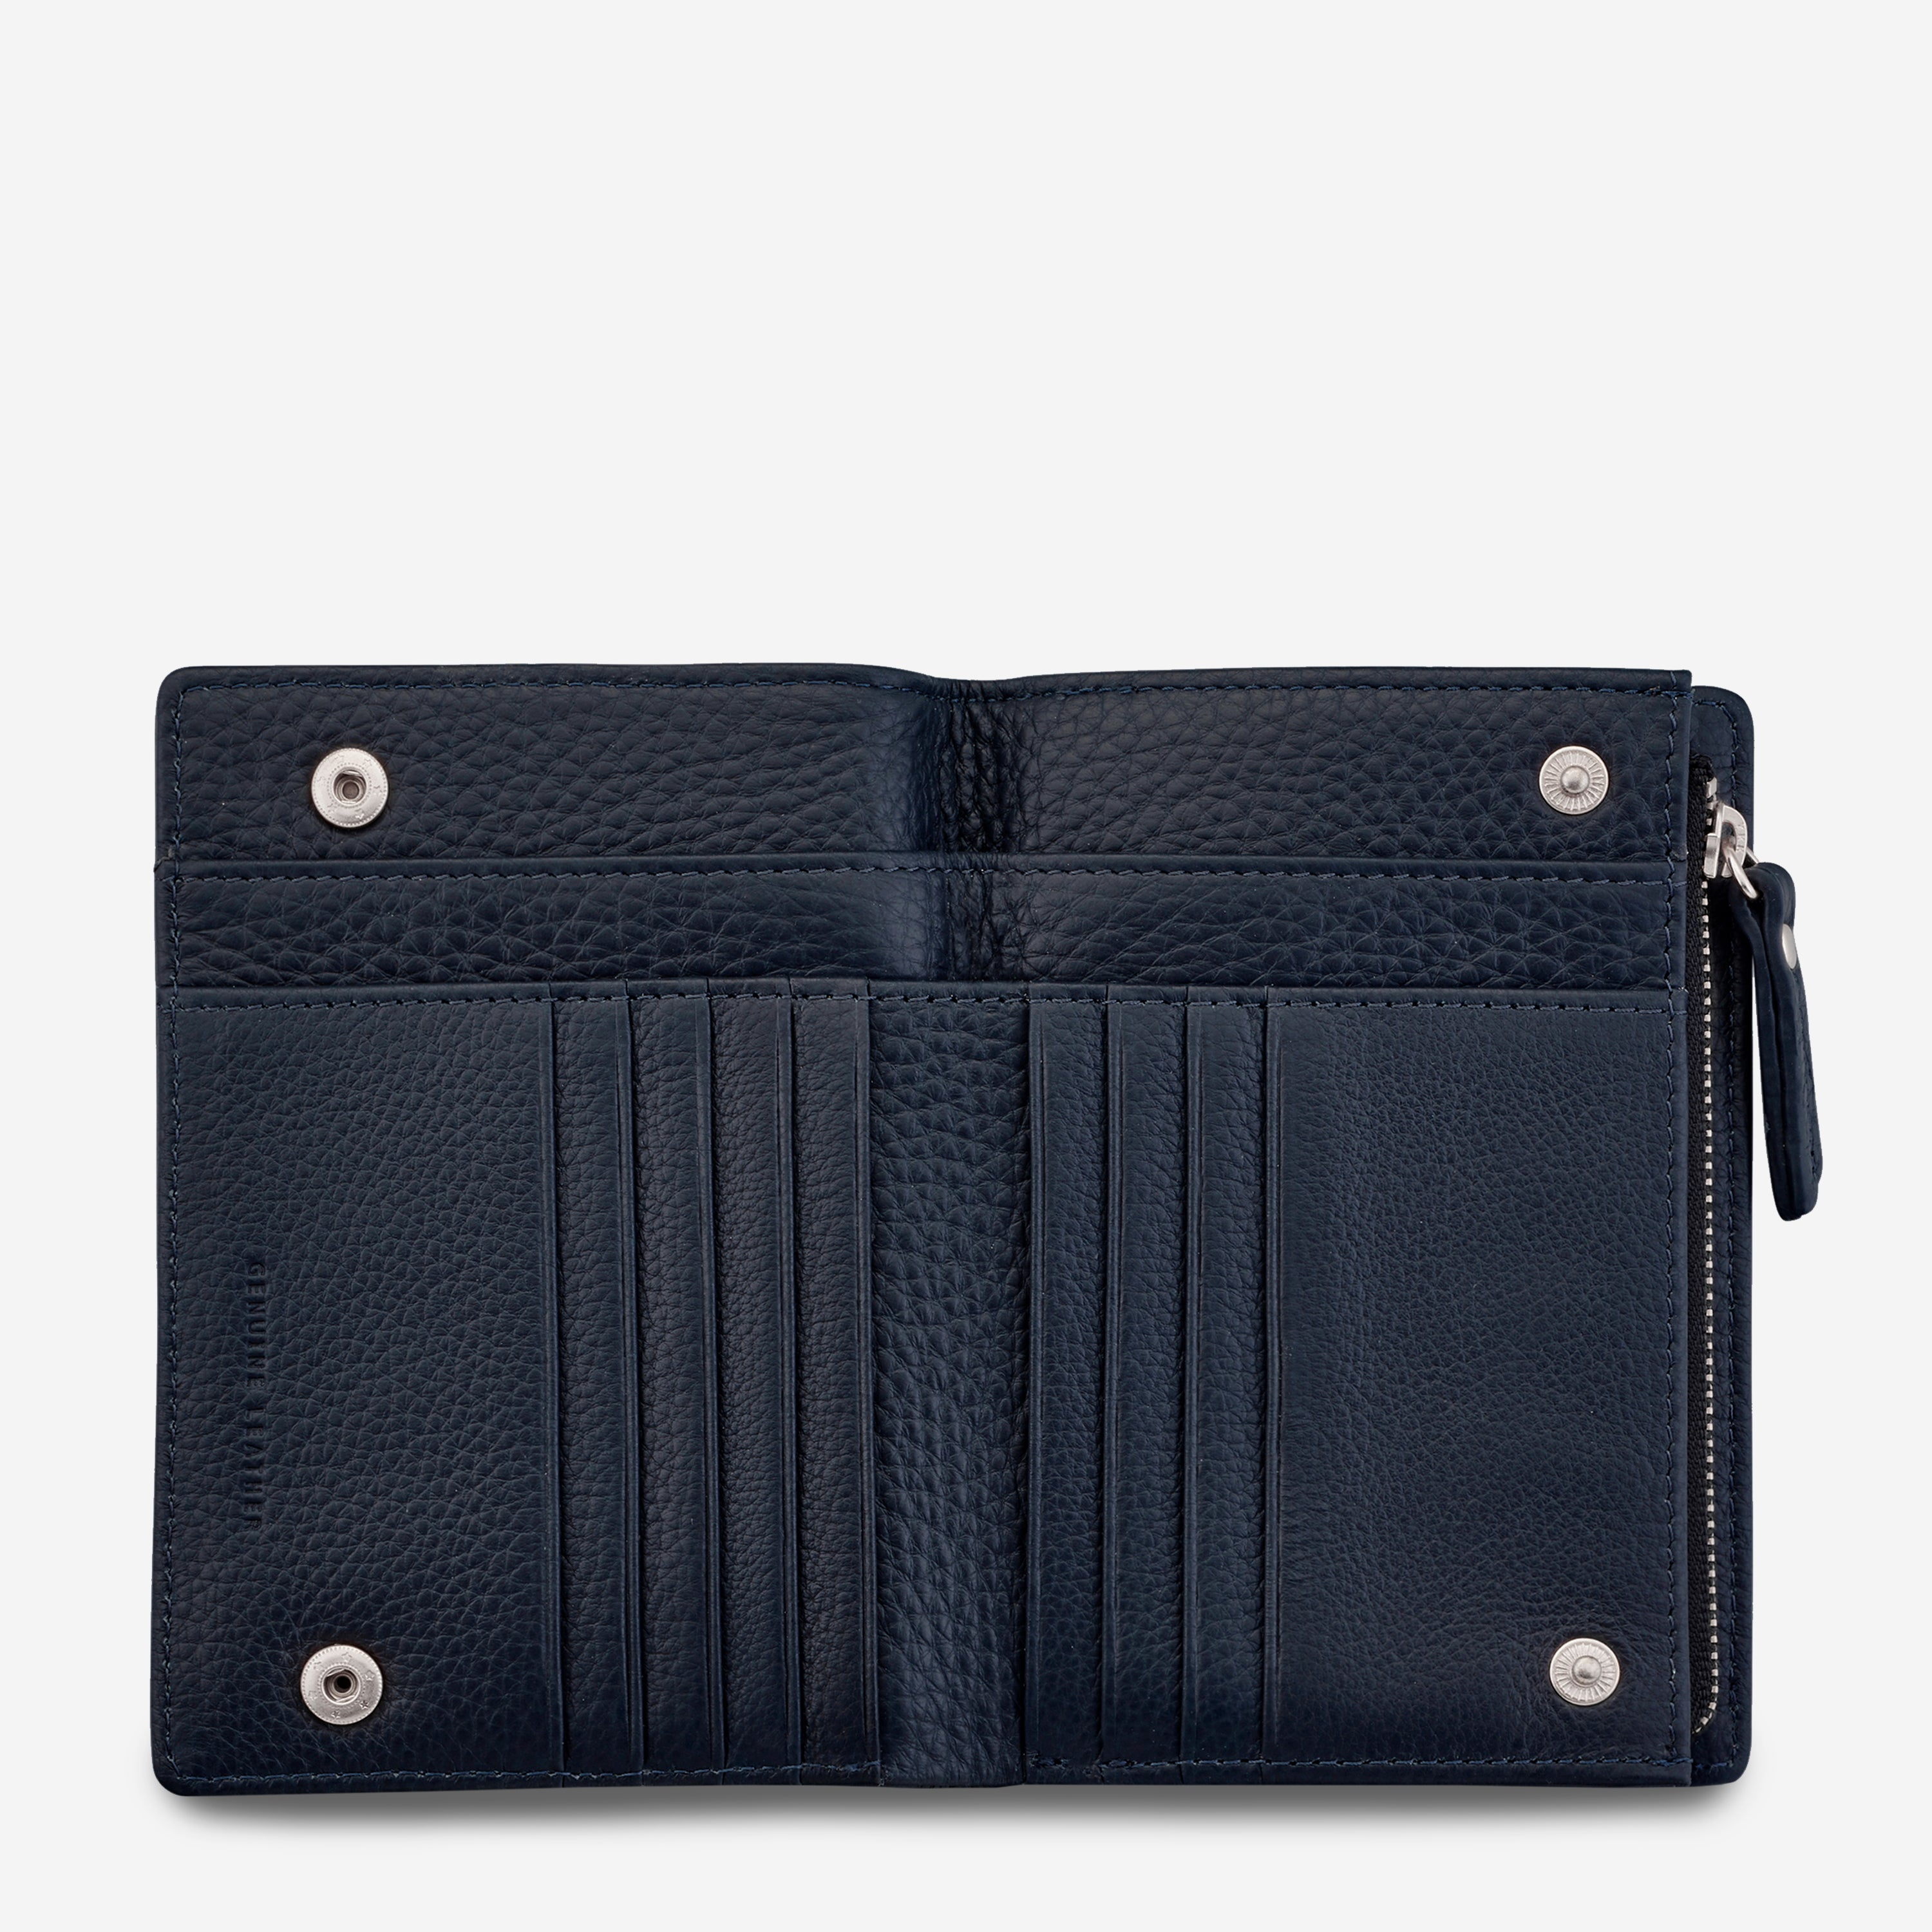 Status Anxiety Insurgency Women's Leather Wallet - Navy Blue